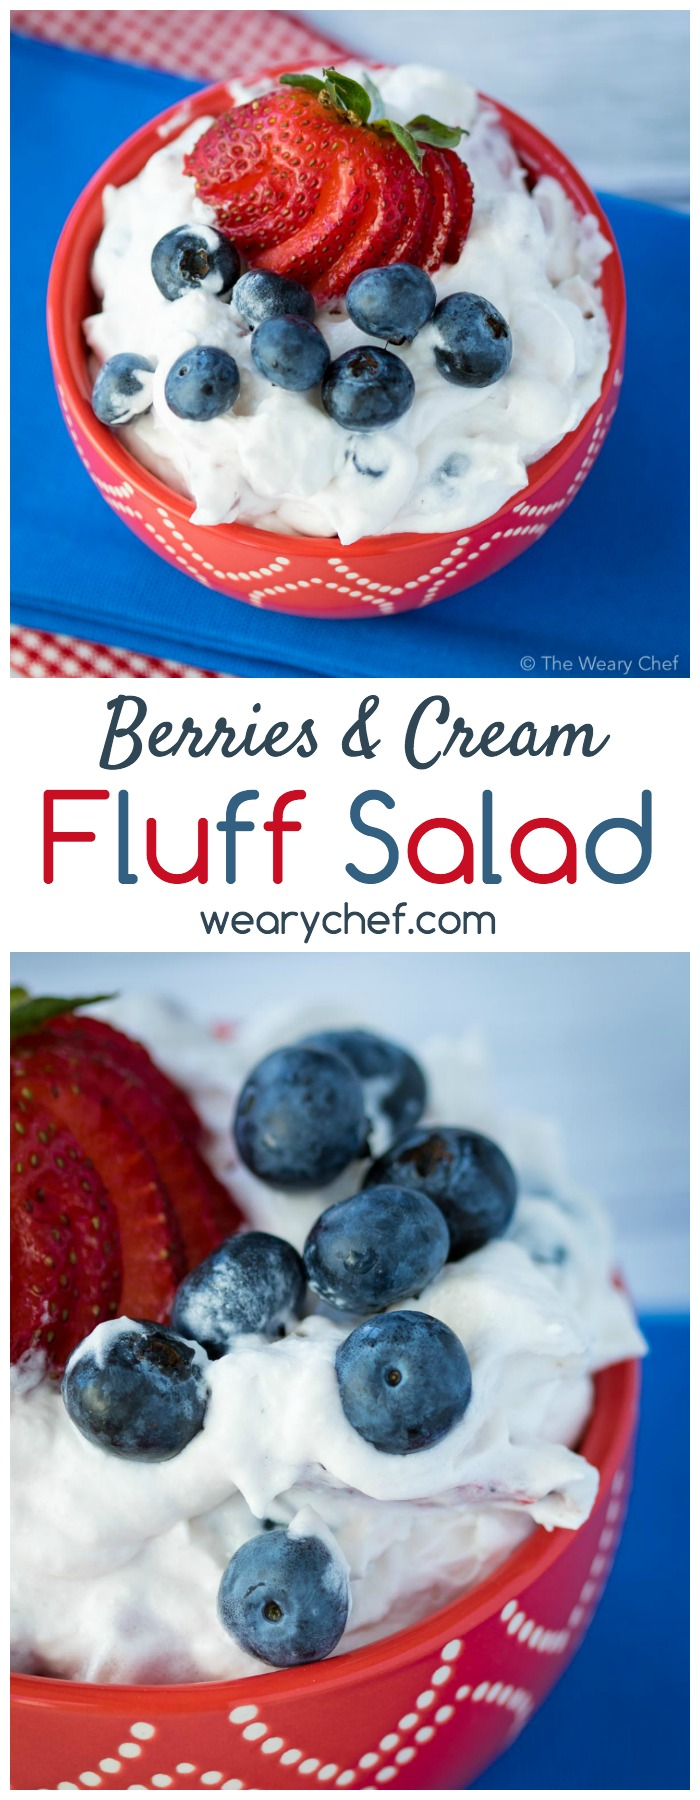 This delicious and easy fluff salad recipe with strawberries and blueberries is a perfect summer dessert!